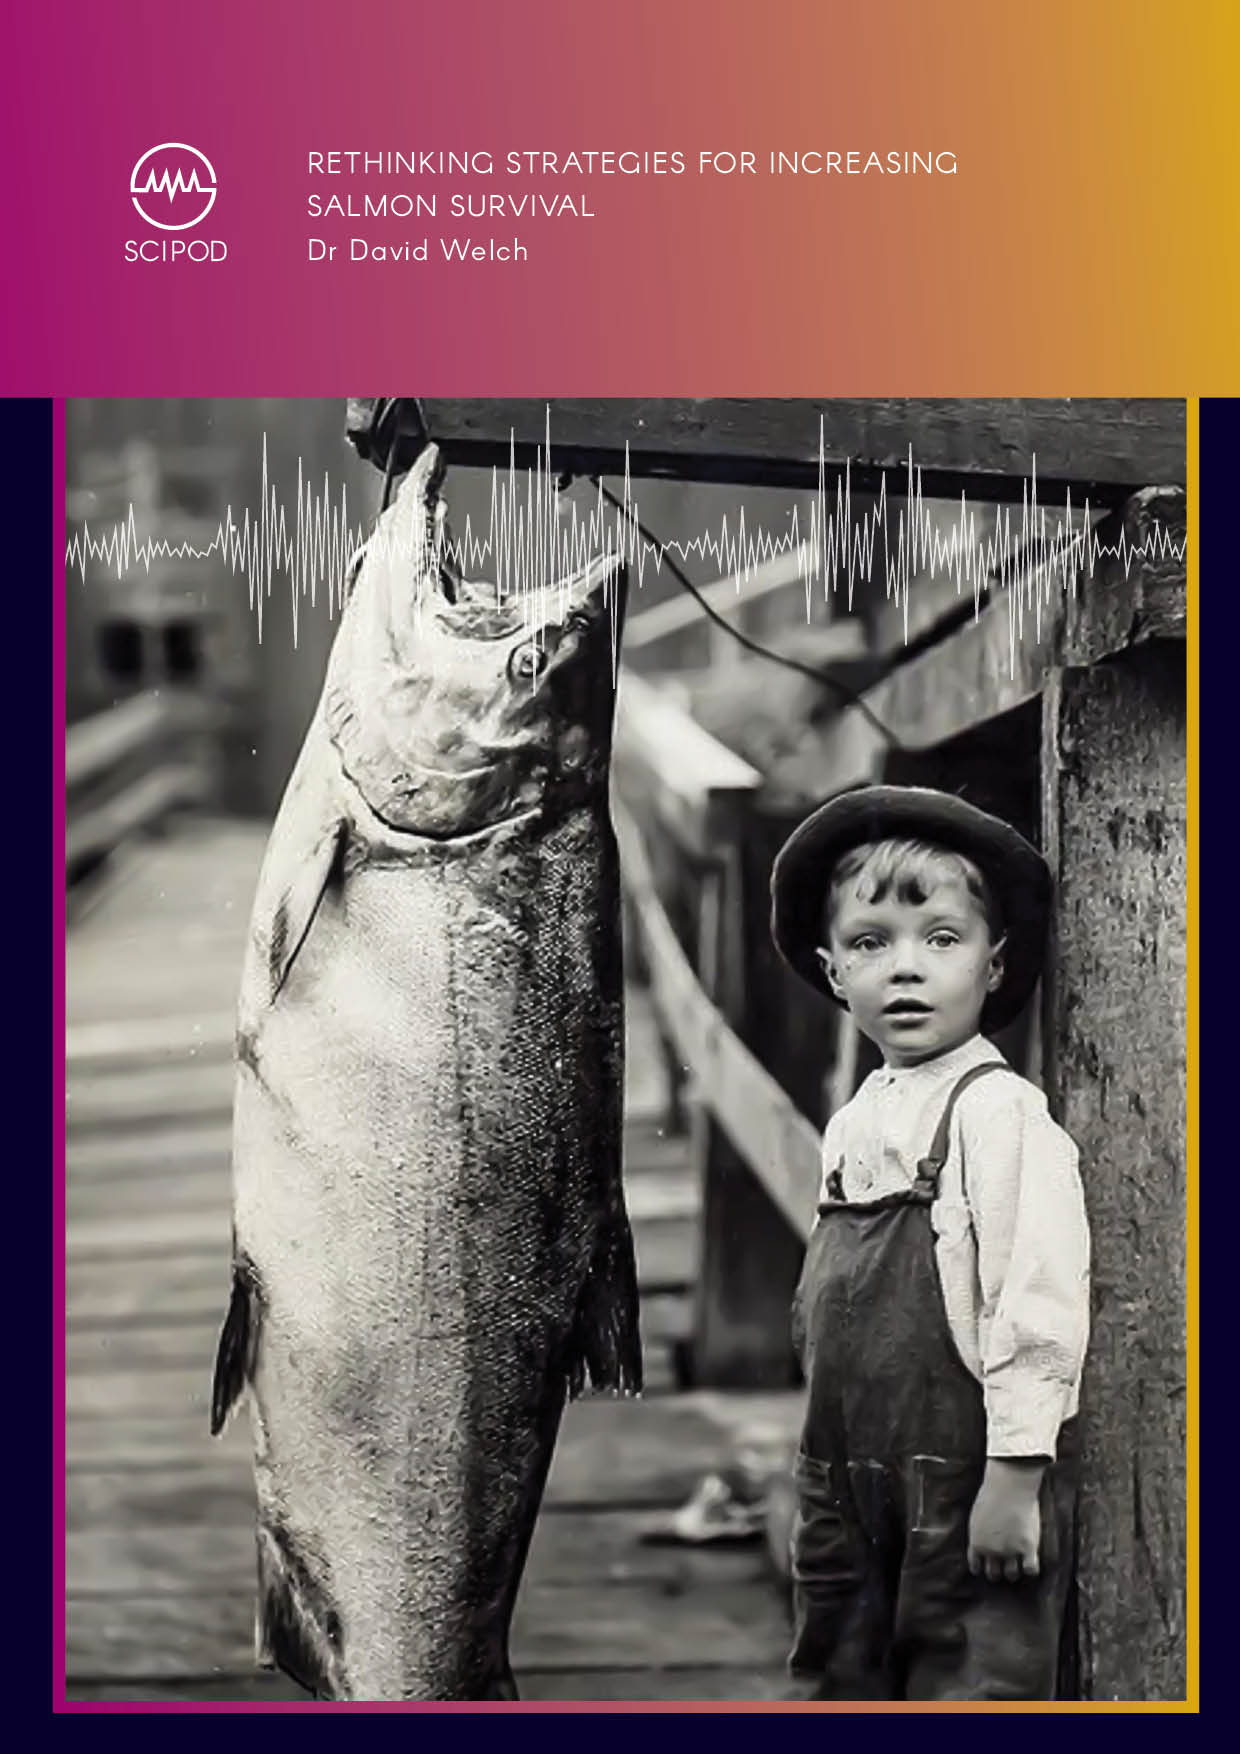 Rethinking Strategies For Increasing Salmon Survival – Dr David Welch, Kintama Research Services